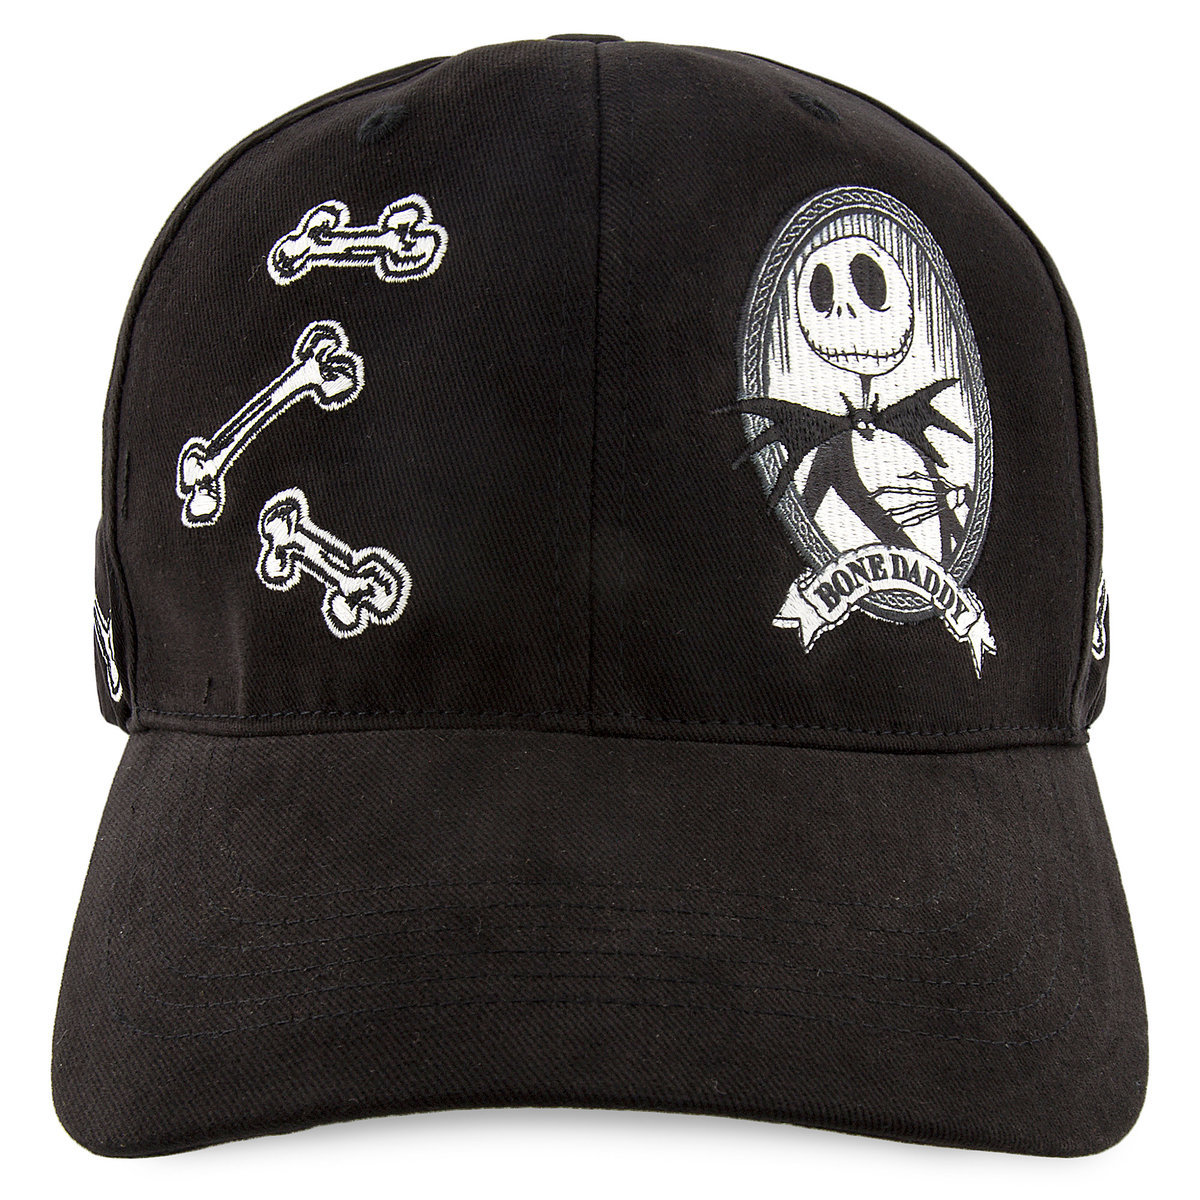 NEW Disney Nightmare Before Christmas Bone Daddy collectable hat featuring Jack